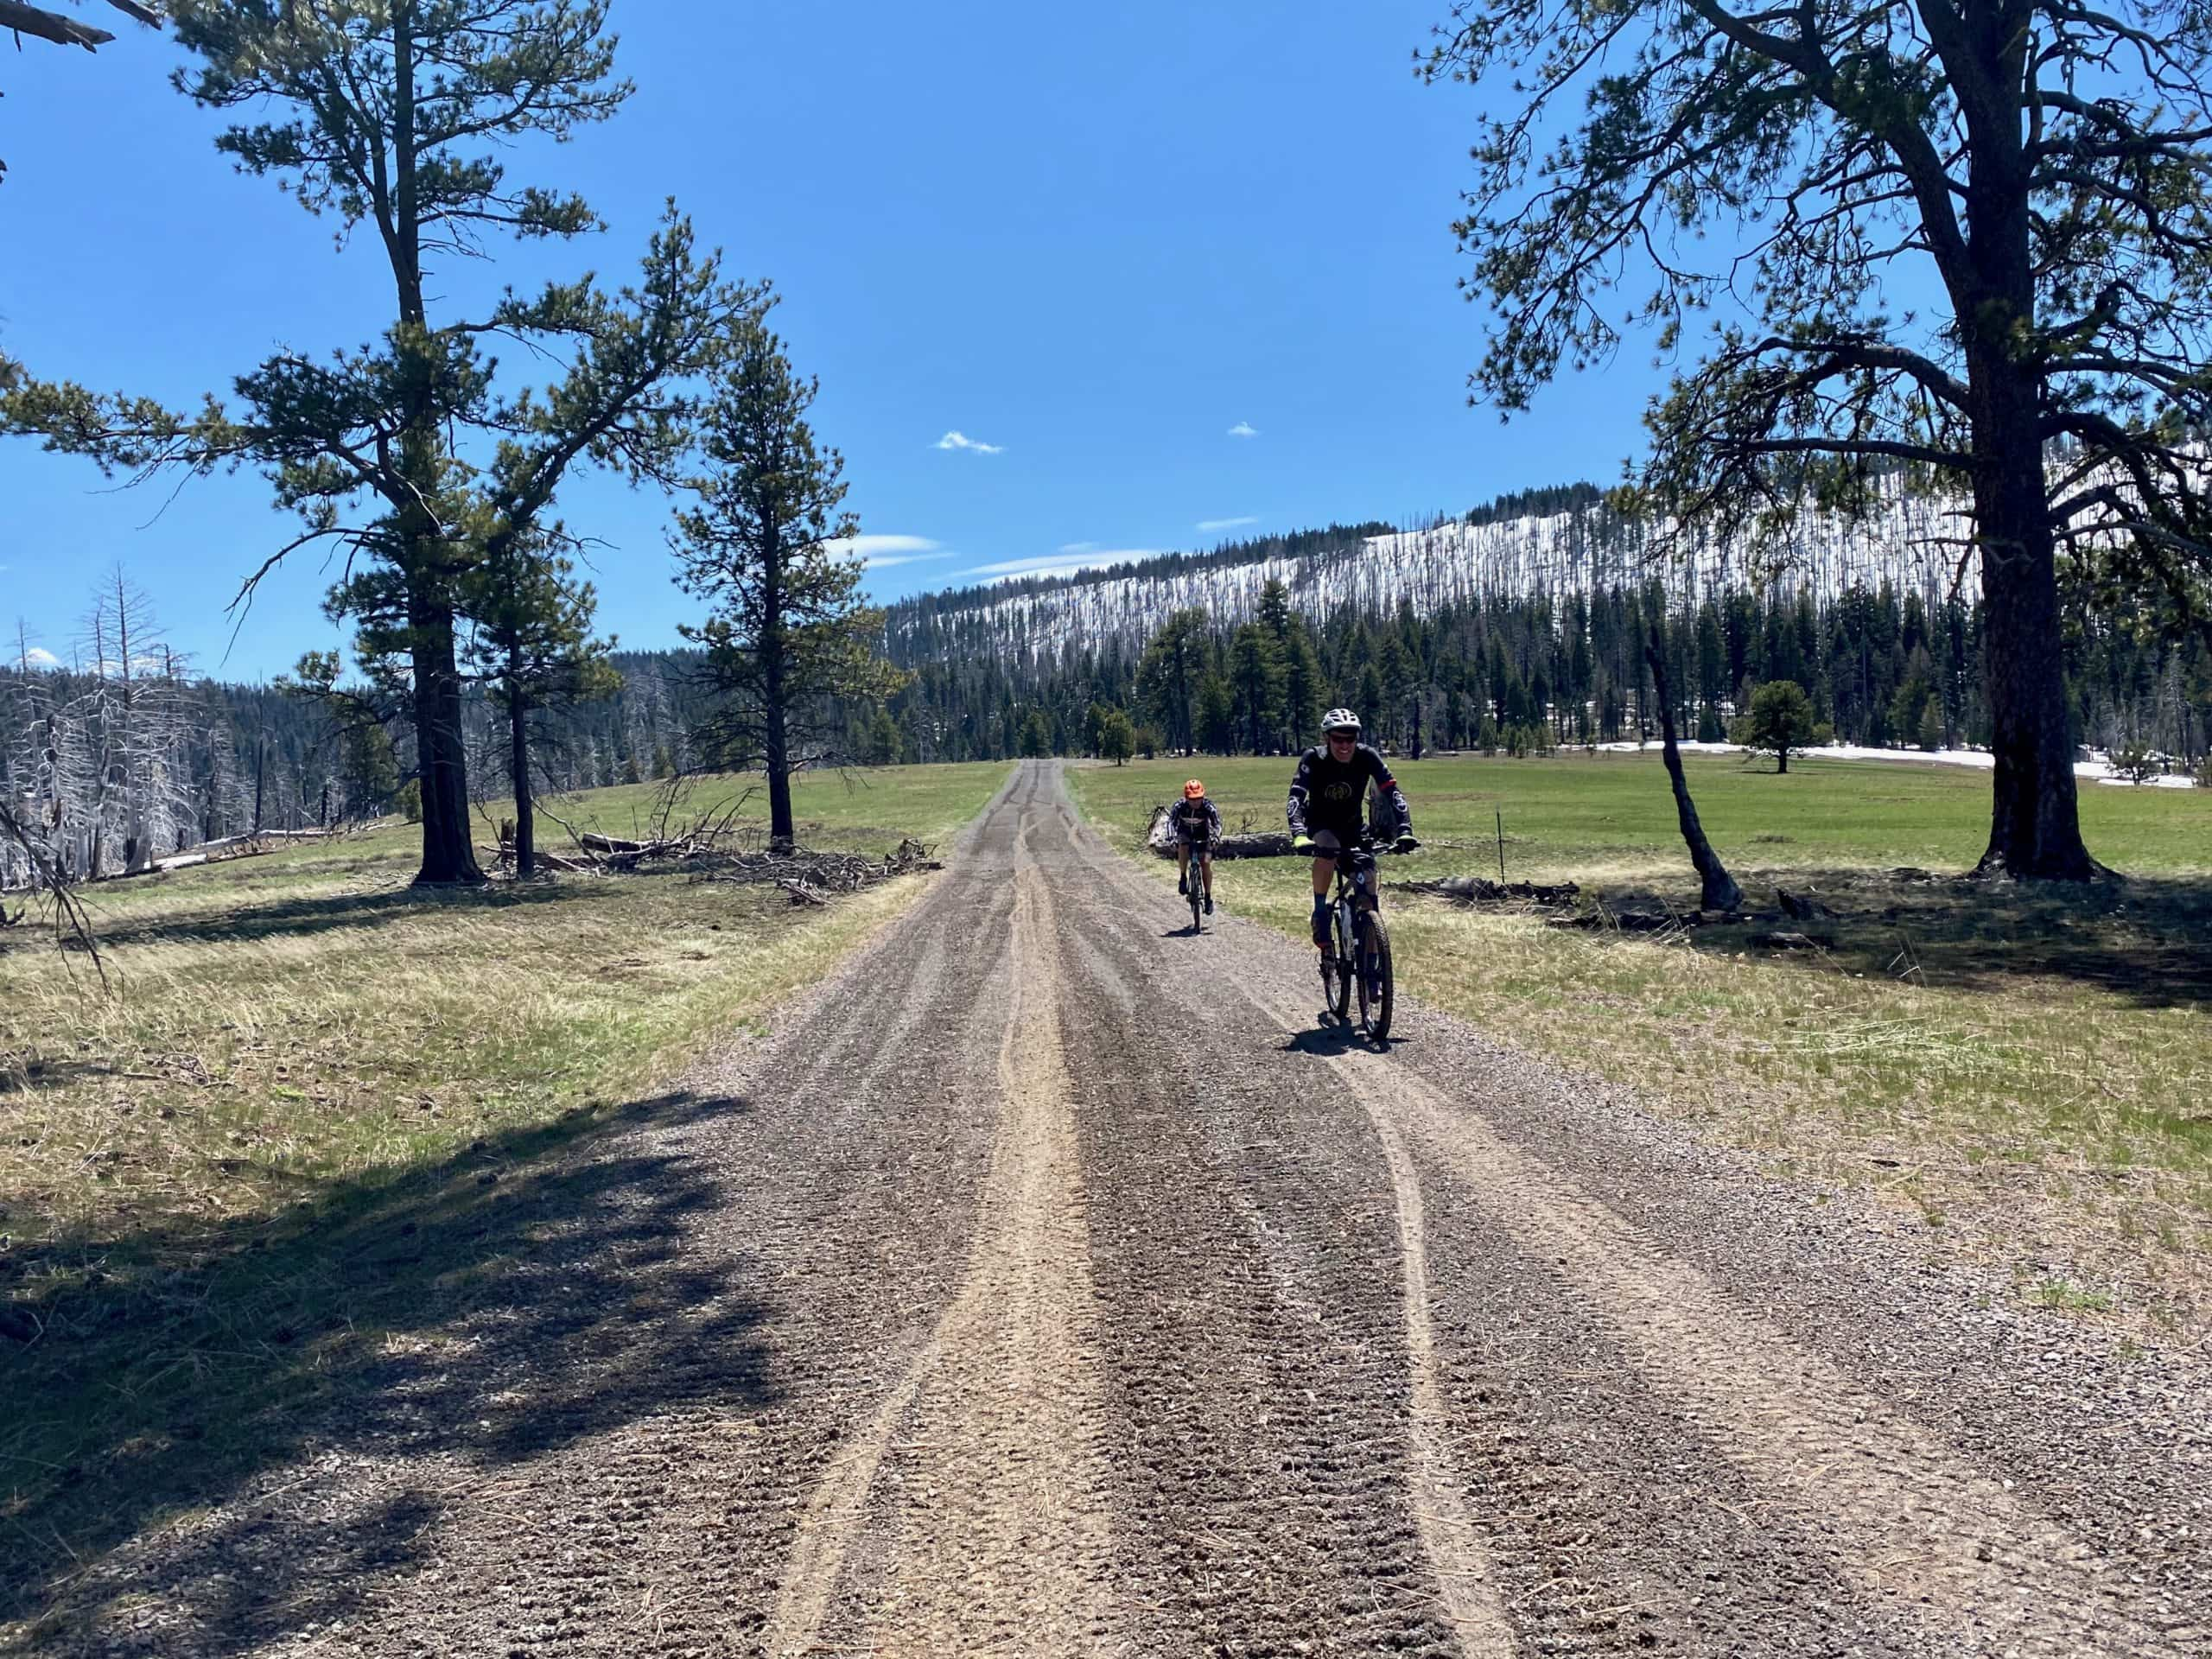 Cyclists on gravel road with Wolf mountain in the background near Ragar ranger station in Oregon.